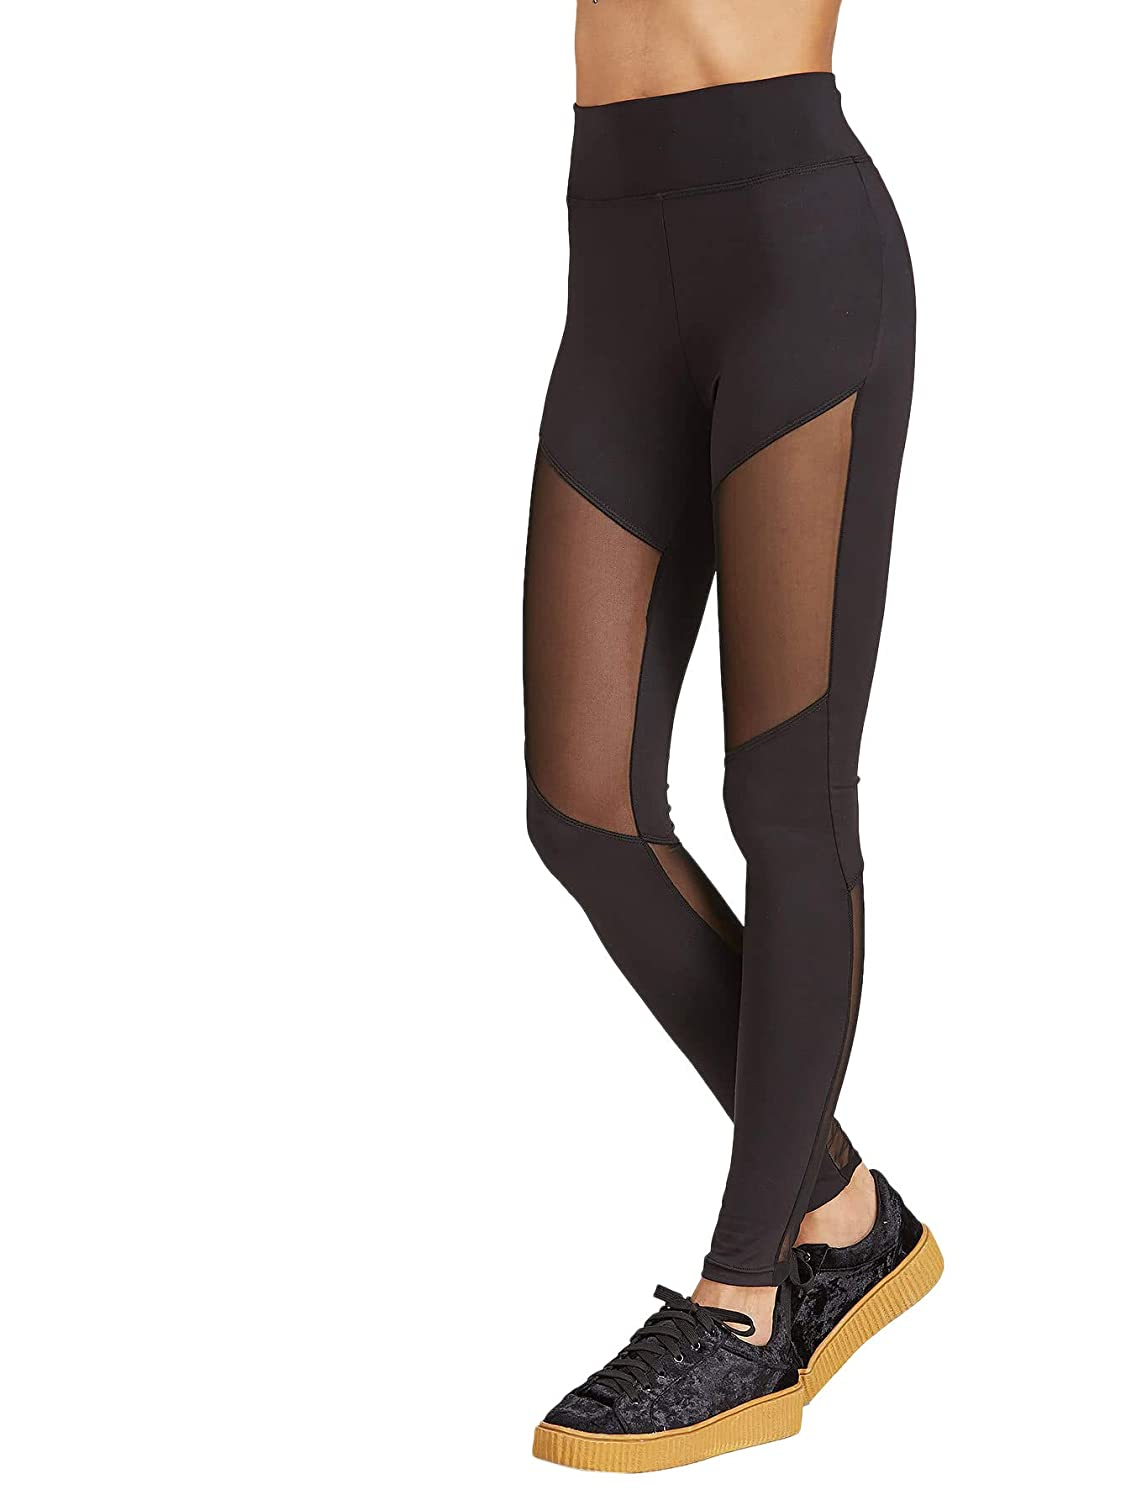 SOLY HUX Mujer Fitness Leggings Mallas Deporte Leggins Opaco Pantalones Gimnasio